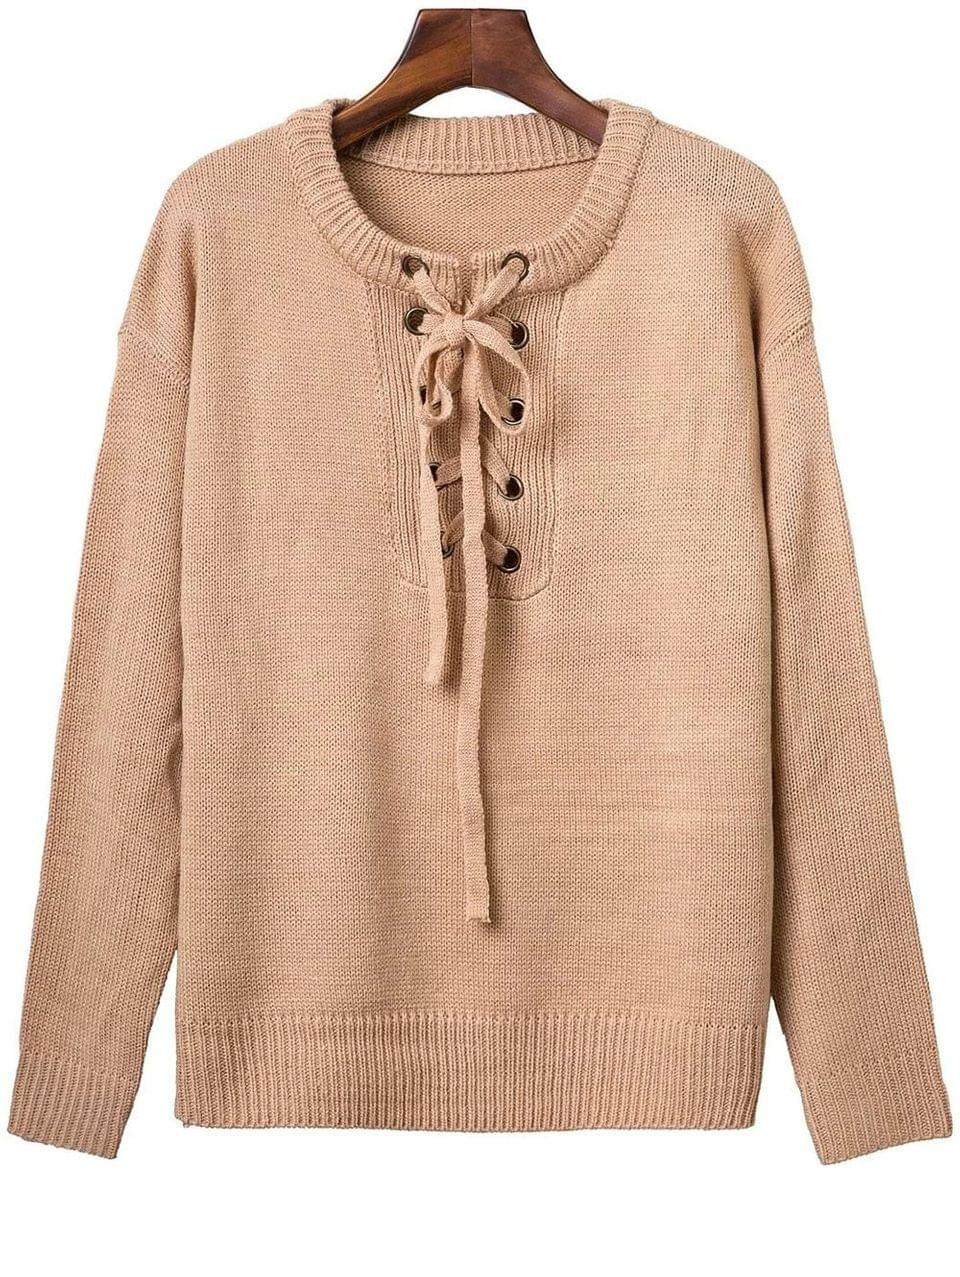 Women's Solid Color Long Sleeve Lace Up Sweater - Apricot